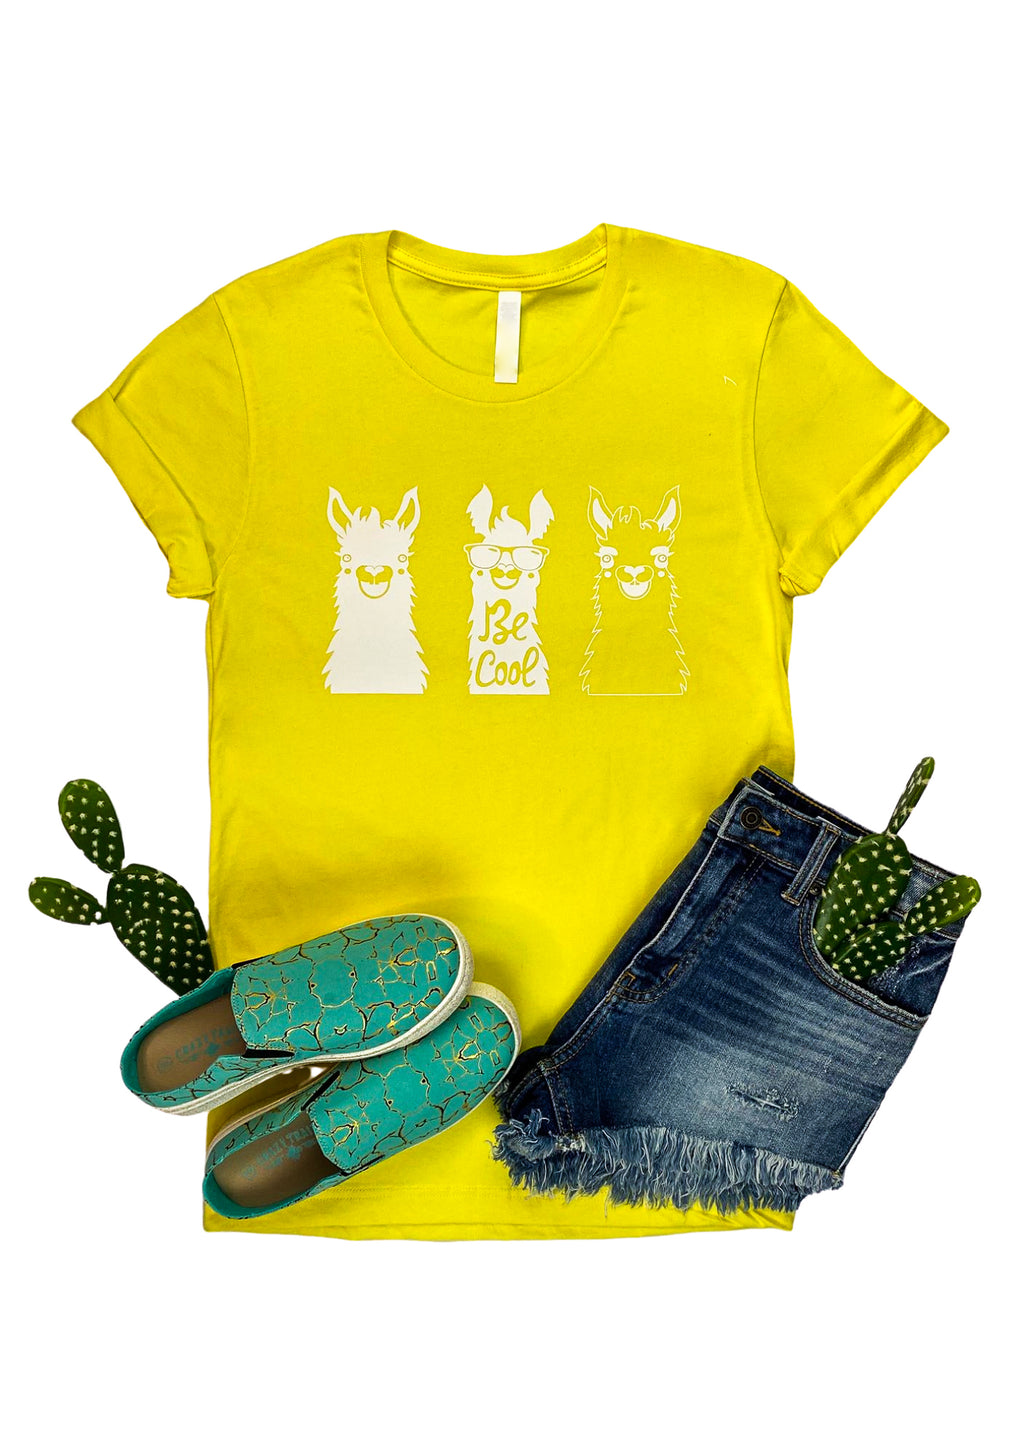 "Yellow Short Sleeve Tee with 3 Different Looking Llamas and ""Be Cool"" in White Ink in the center"